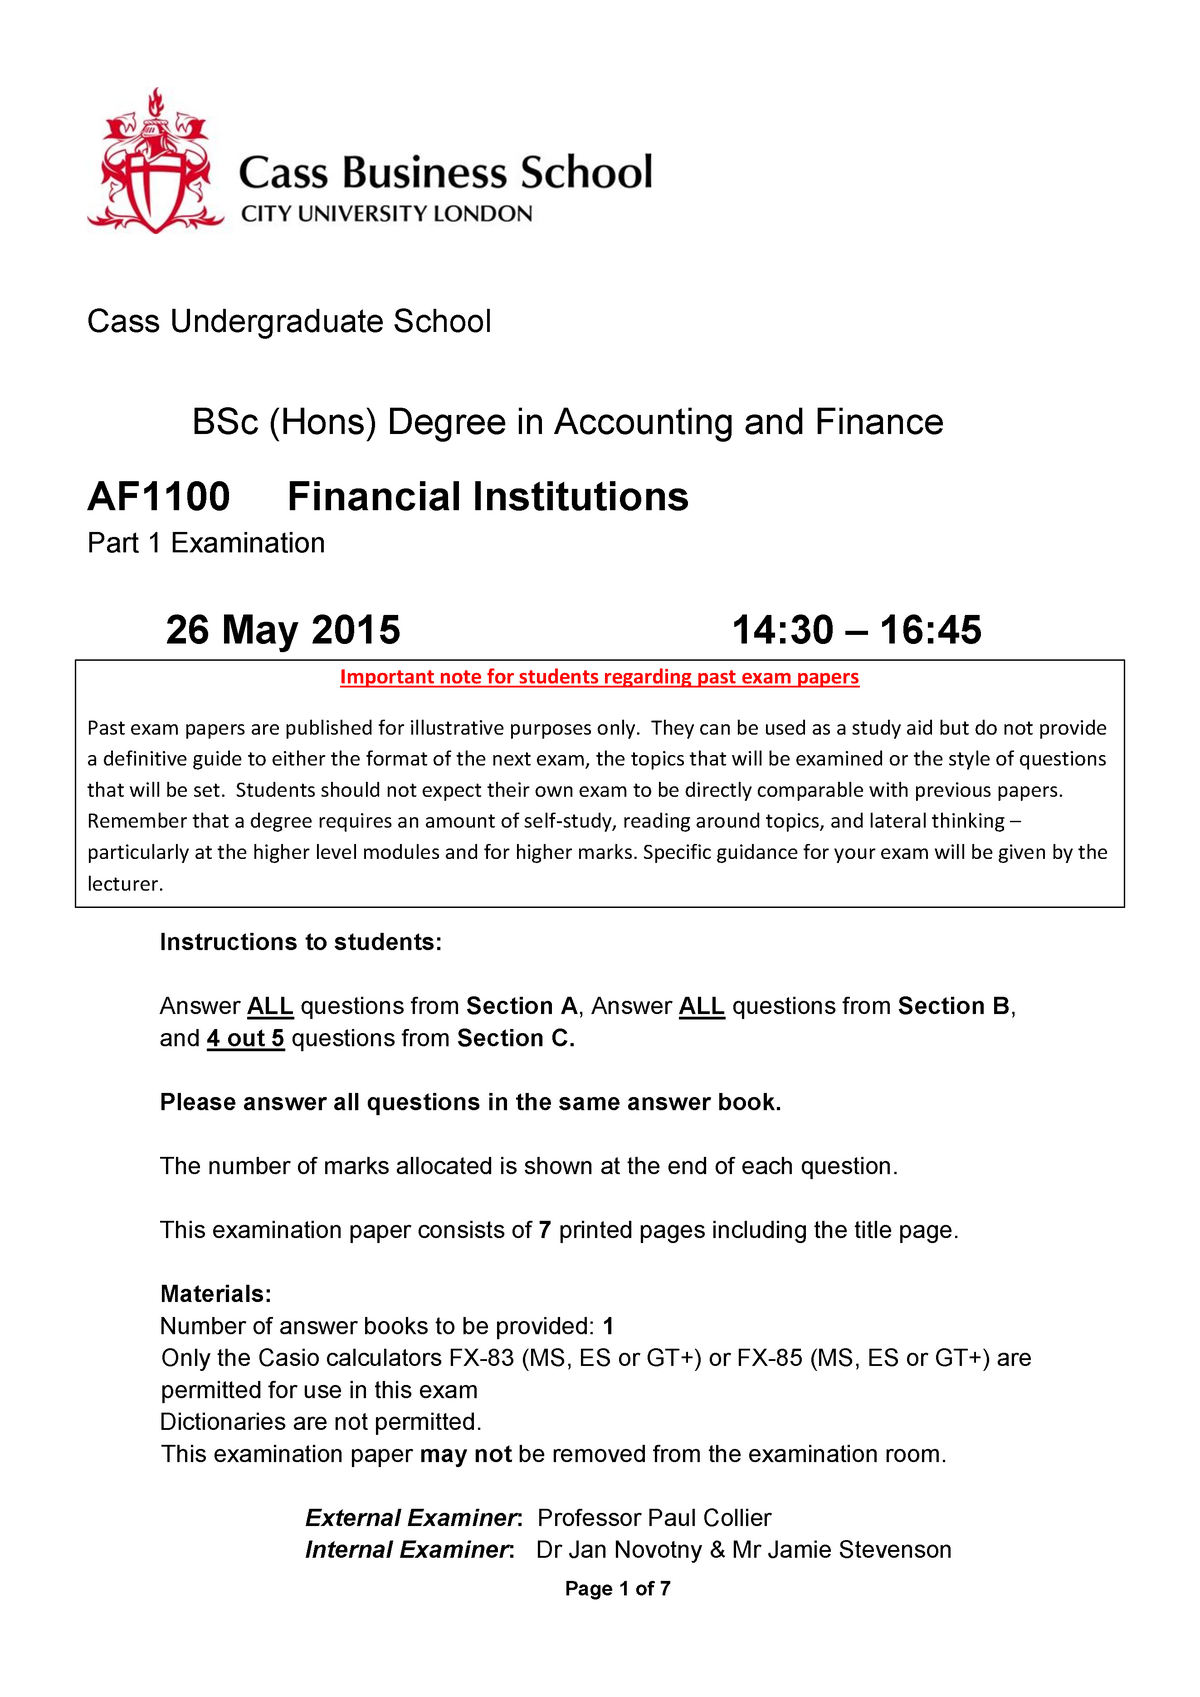 Exam May 2015, questions - Financial Institutions AF1100